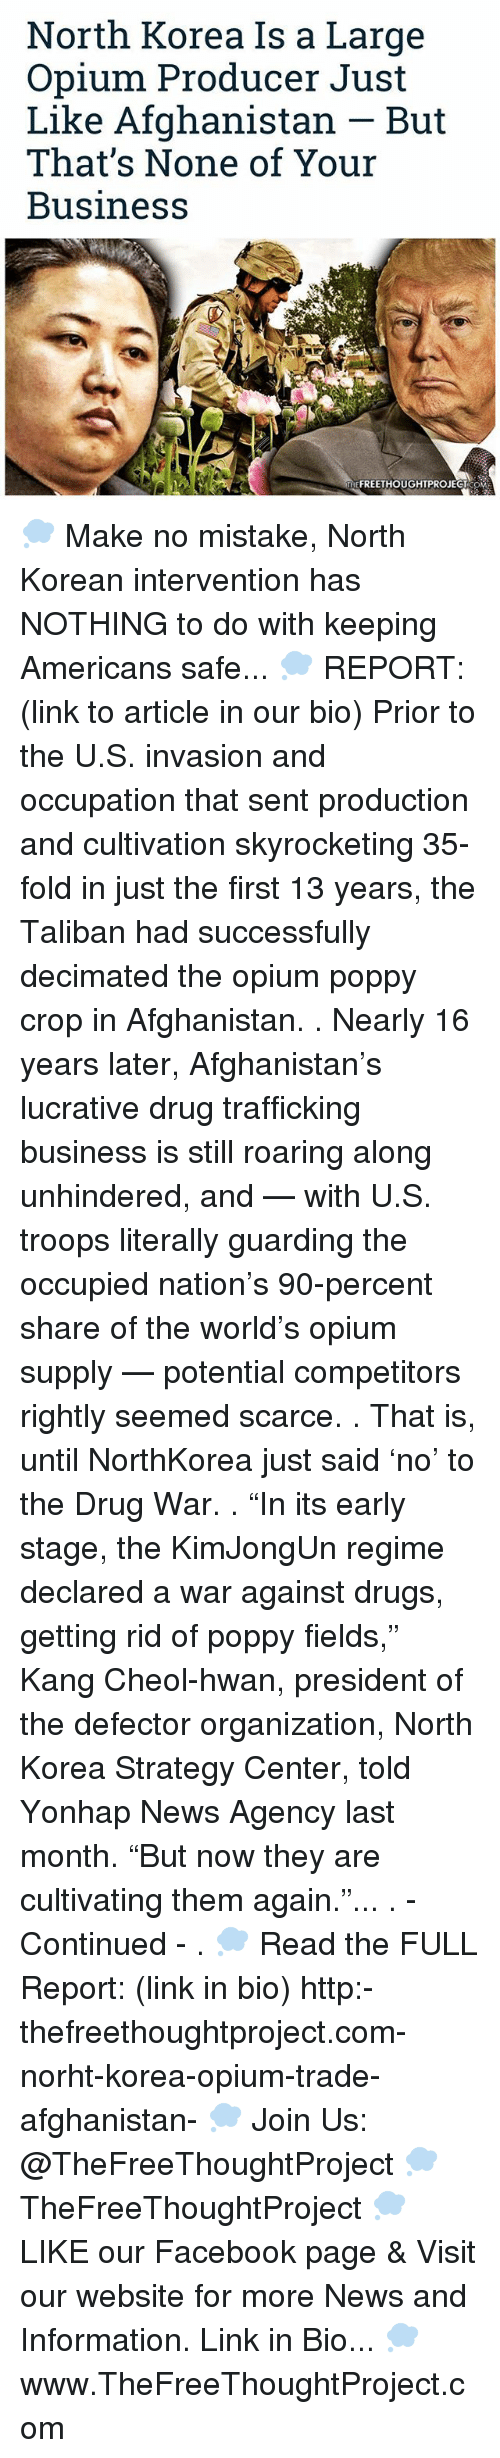 "Talibanned: North Korea Is a Large  Opium Producer Just  Like Afghanistan But  That's None of Your  Business  TNEFREETHOUGHTPROJECT COM 💭 Make no mistake, North Korean intervention has NOTHING to do with keeping Americans safe... 💭 REPORT: (link to article in our bio) Prior to the U.S. invasion and occupation that sent production and cultivation skyrocketing 35-fold in just the first 13 years, the Taliban had successfully decimated the opium poppy crop in Afghanistan. . Nearly 16 years later, Afghanistan's lucrative drug trafficking business is still roaring along unhindered, and — with U.S. troops literally guarding the occupied nation's 90-percent share of the world's opium supply — potential competitors rightly seemed scarce. . That is, until NorthKorea just said 'no' to the Drug War. . ""In its early stage, the KimJongUn regime declared a war against drugs, getting rid of poppy fields,"" Kang Cheol-hwan, president of the defector organization, North Korea Strategy Center, told Yonhap News Agency last month. ""But now they are cultivating them again.""... . - Continued - . 💭 Read the FULL Report: (link in bio) http:-thefreethoughtproject.com-norht-korea-opium-trade-afghanistan- 💭 Join Us: @TheFreeThoughtProject 💭 TheFreeThoughtProject 💭 LIKE our Facebook page & Visit our website for more News and Information. Link in Bio... 💭 www.TheFreeThoughtProject.com"